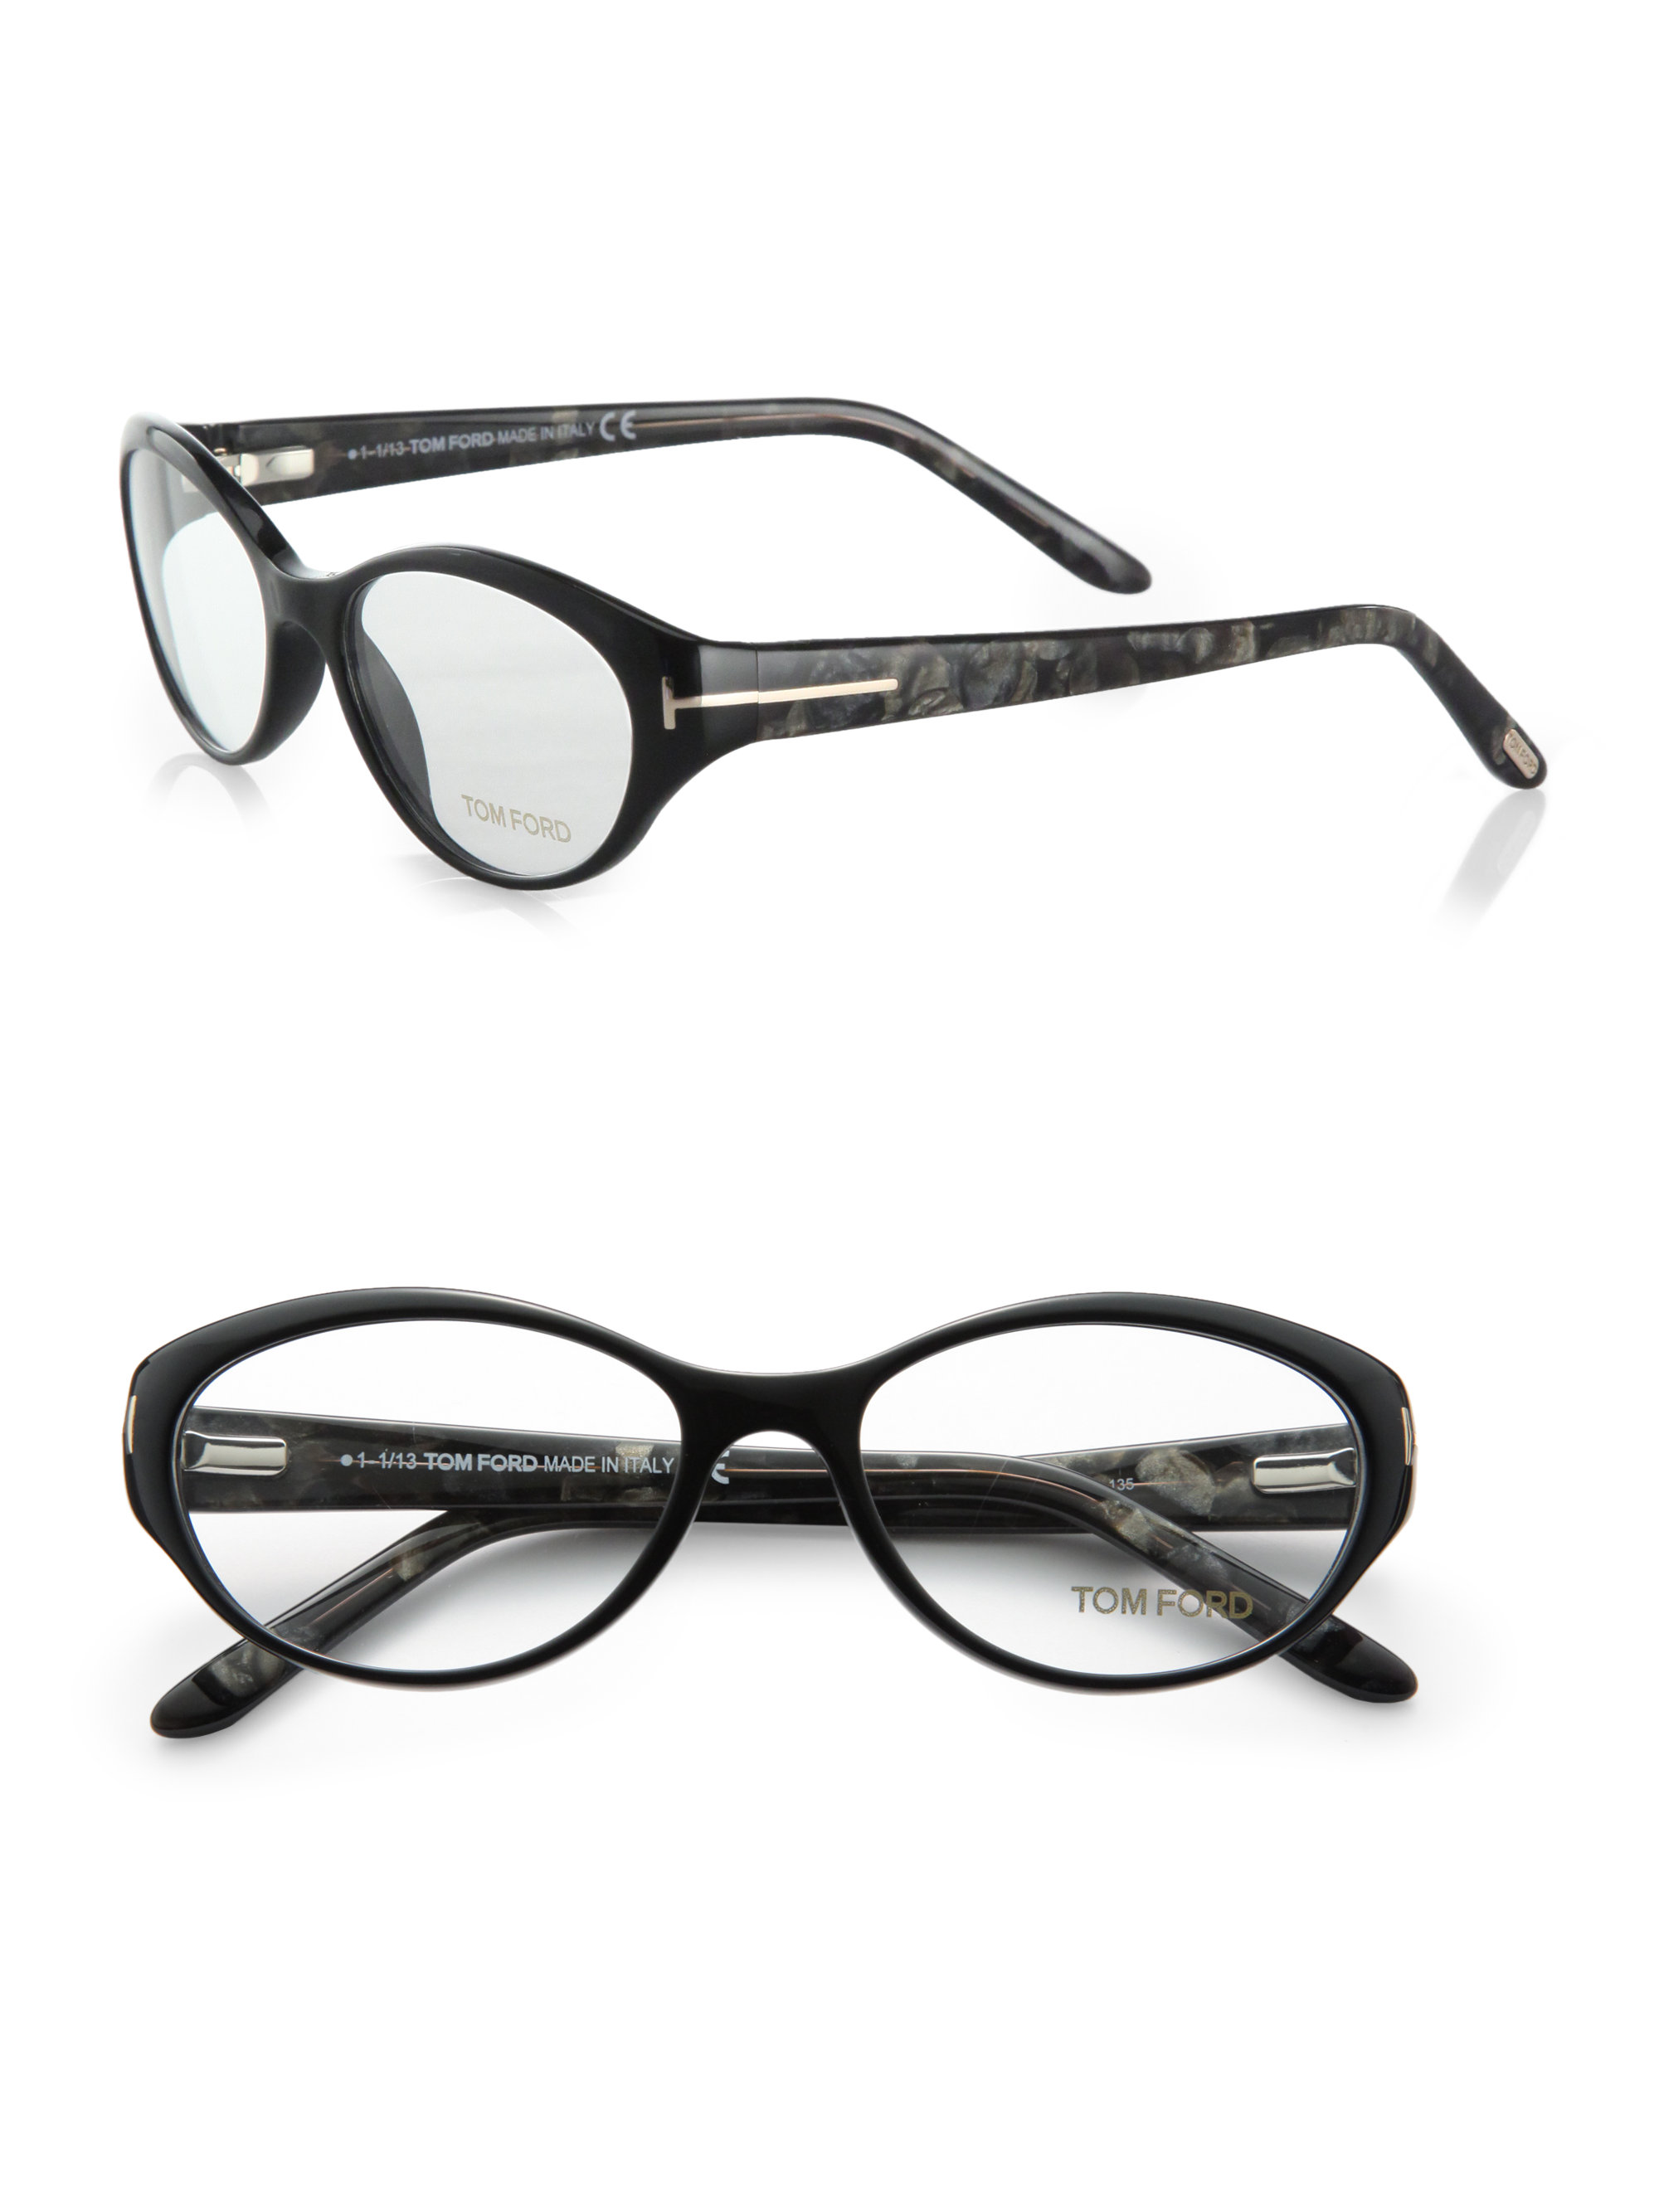 93cc247f5166 Lyst - Tom Ford Oval Acetate Reading Glasses in Black